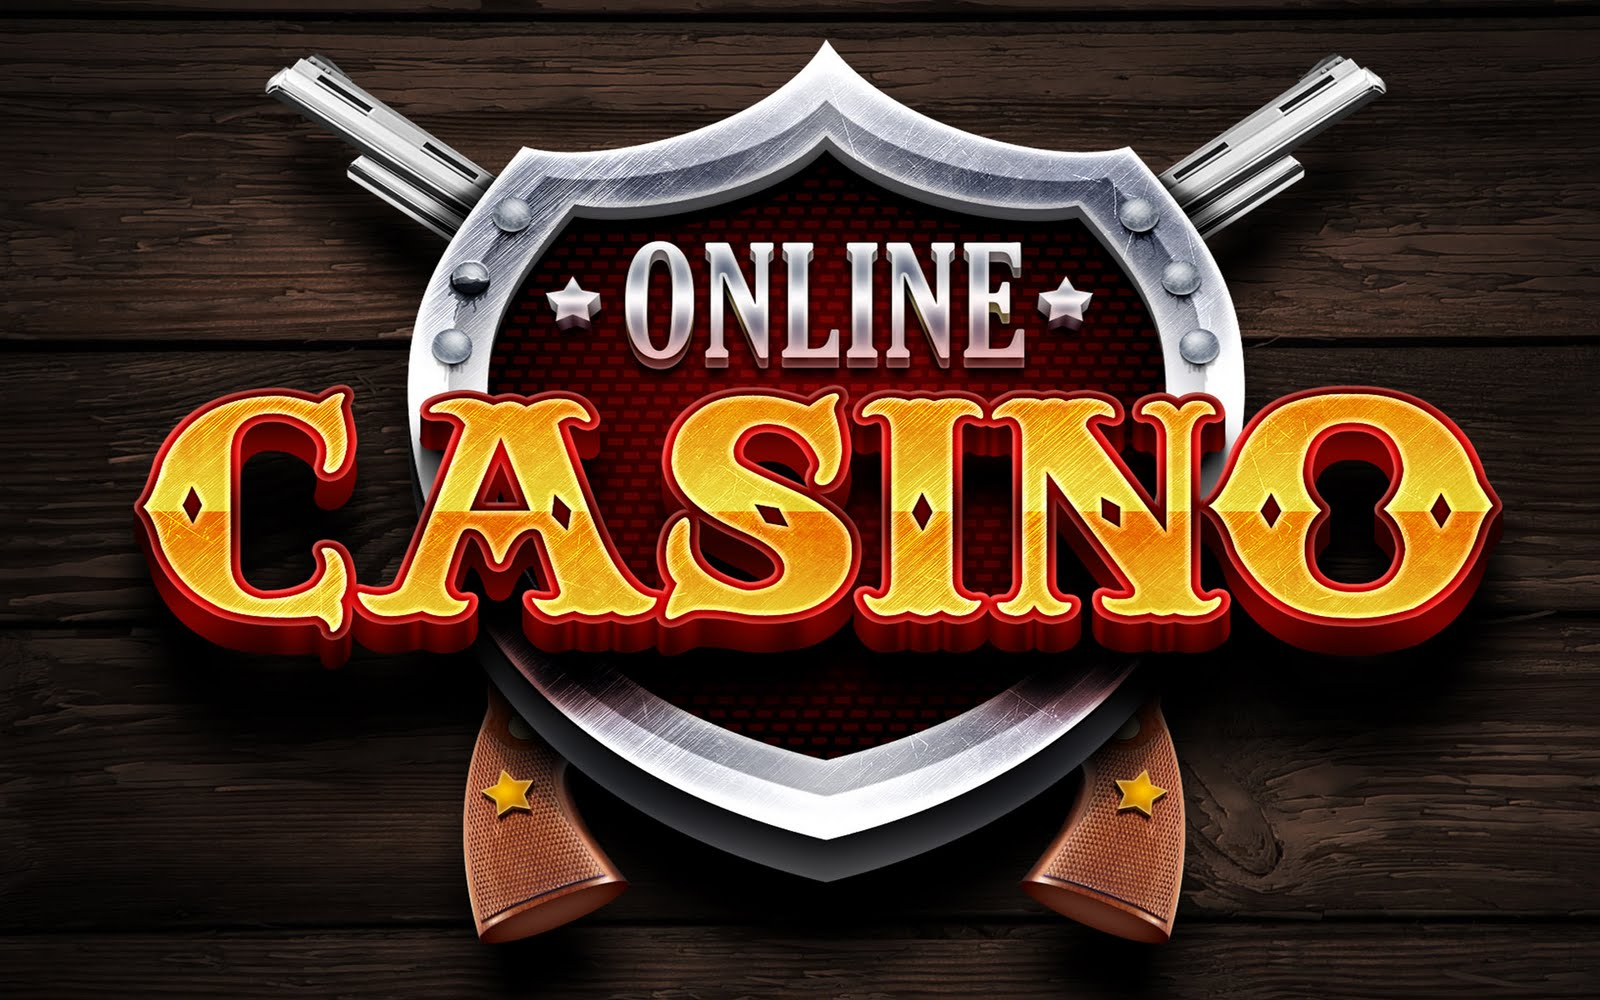 casino online | All the action from the casino floor: news, views and more